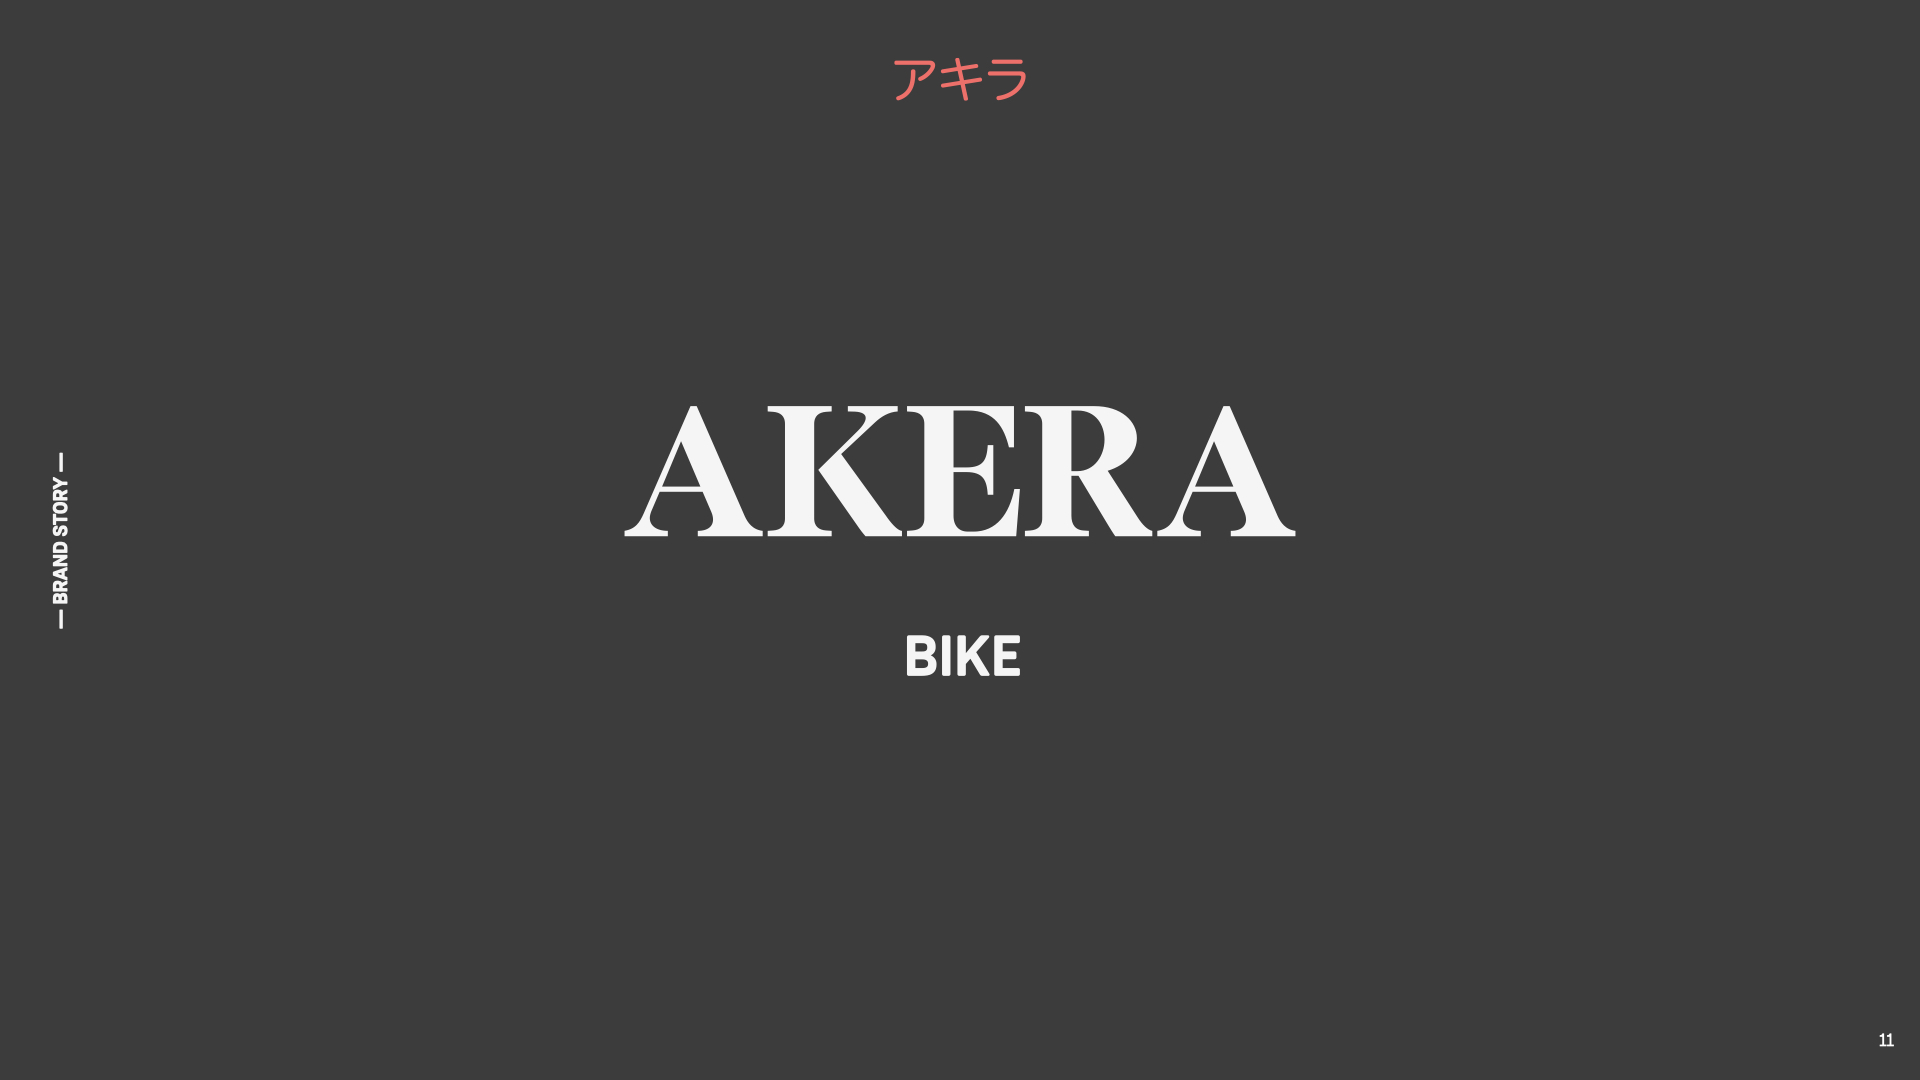 AKERA-NAME-BRANDING-ICONOMIC-NETWORK